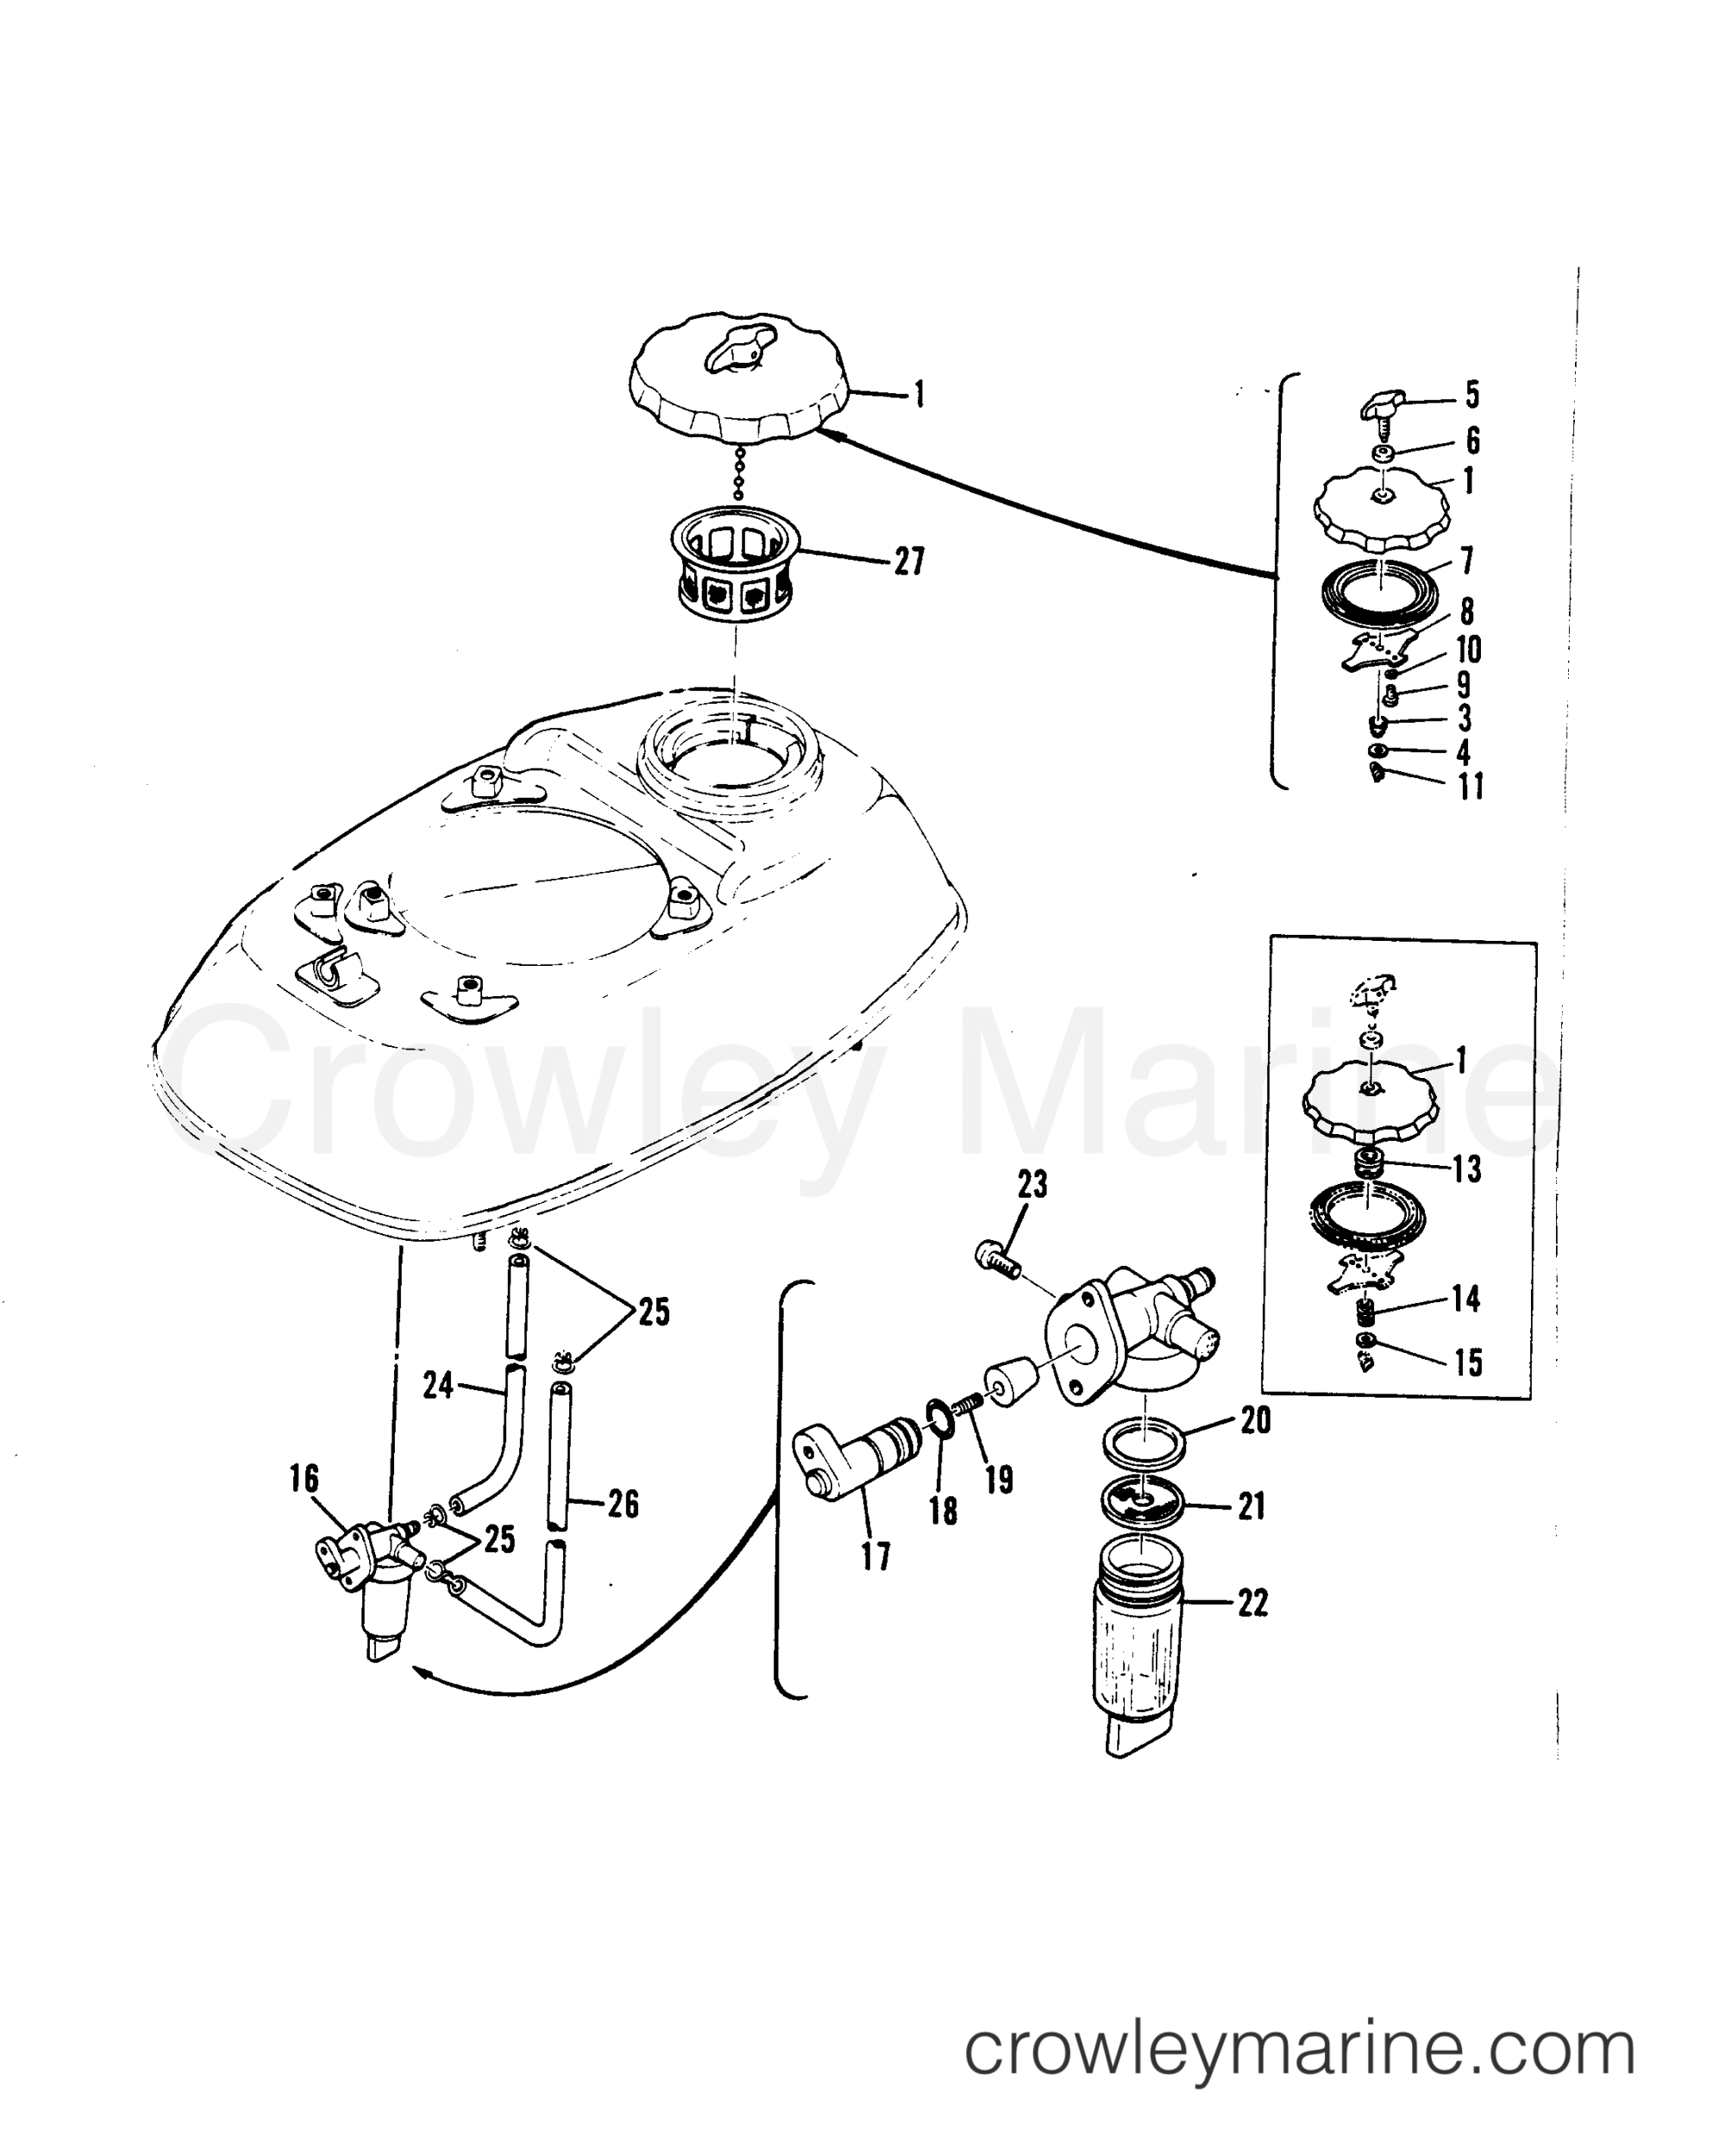 hight resolution of 1987 mariner outboard 3 5 m 7003207 fuel tank cap and fuel filter